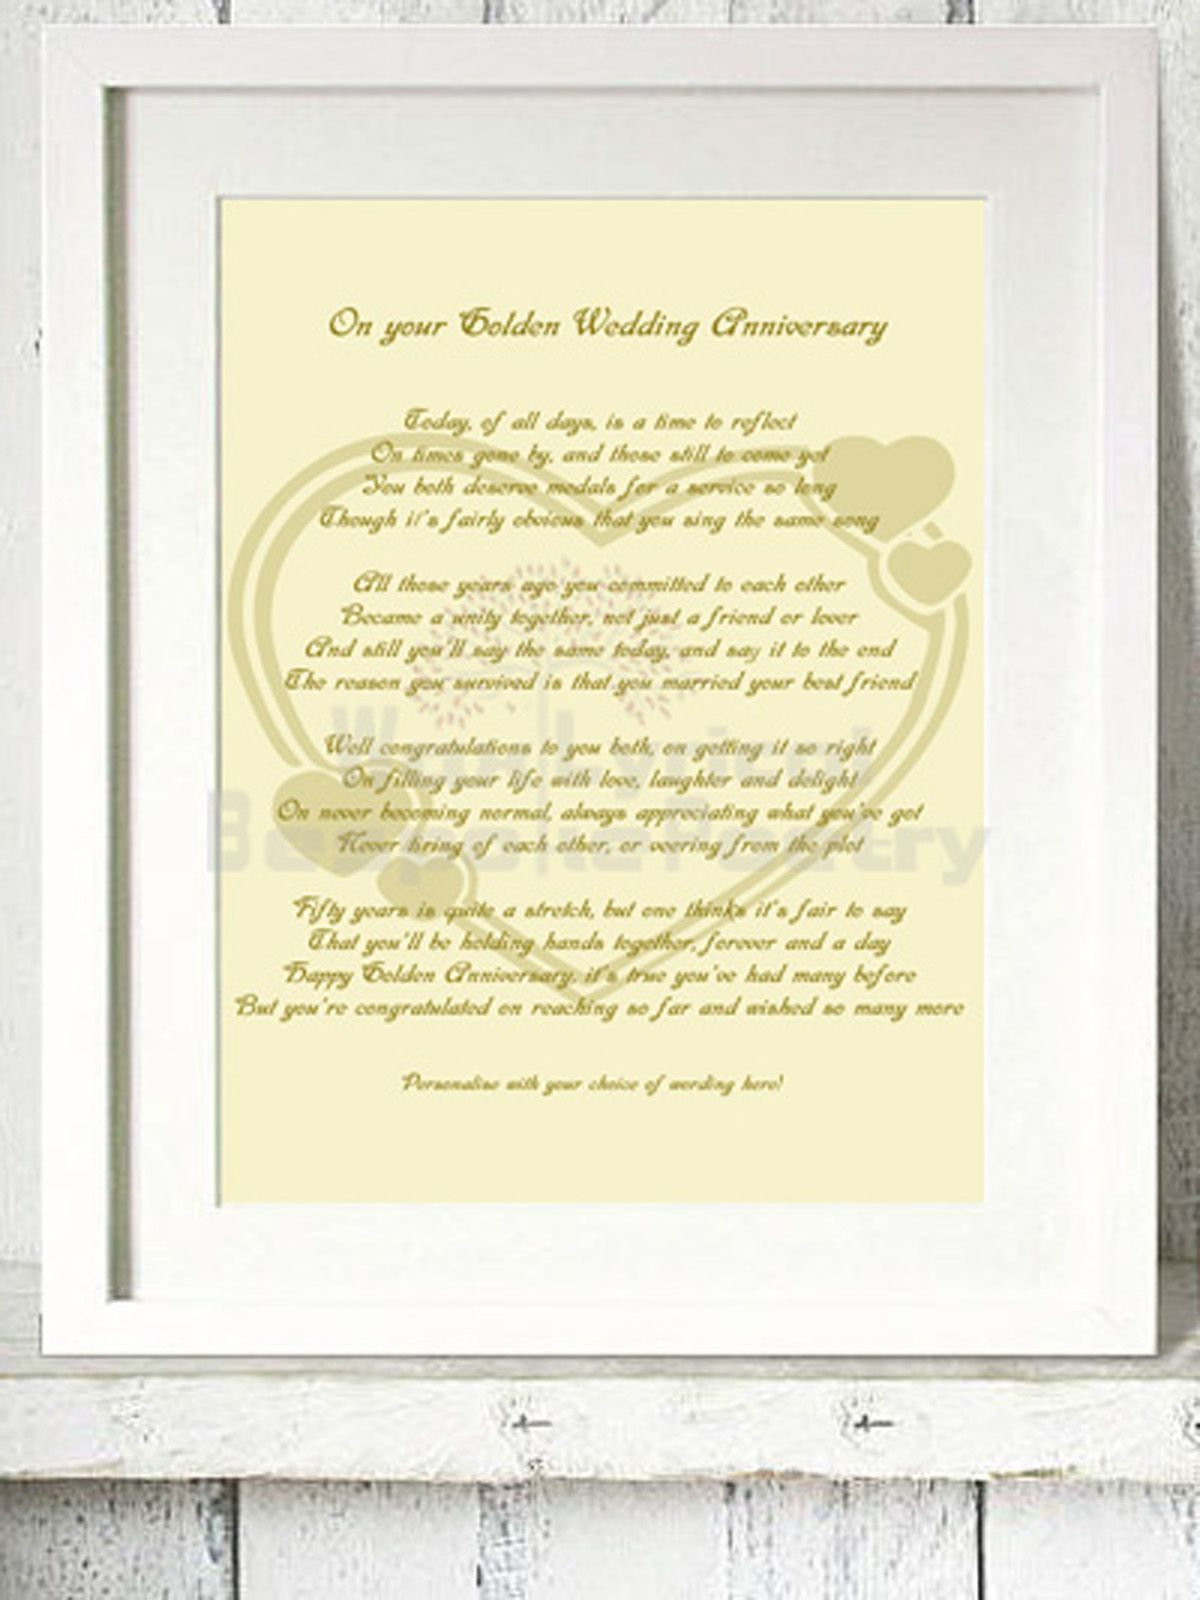 Pin by Laine Wolf on 50 Wedding anniversary poems